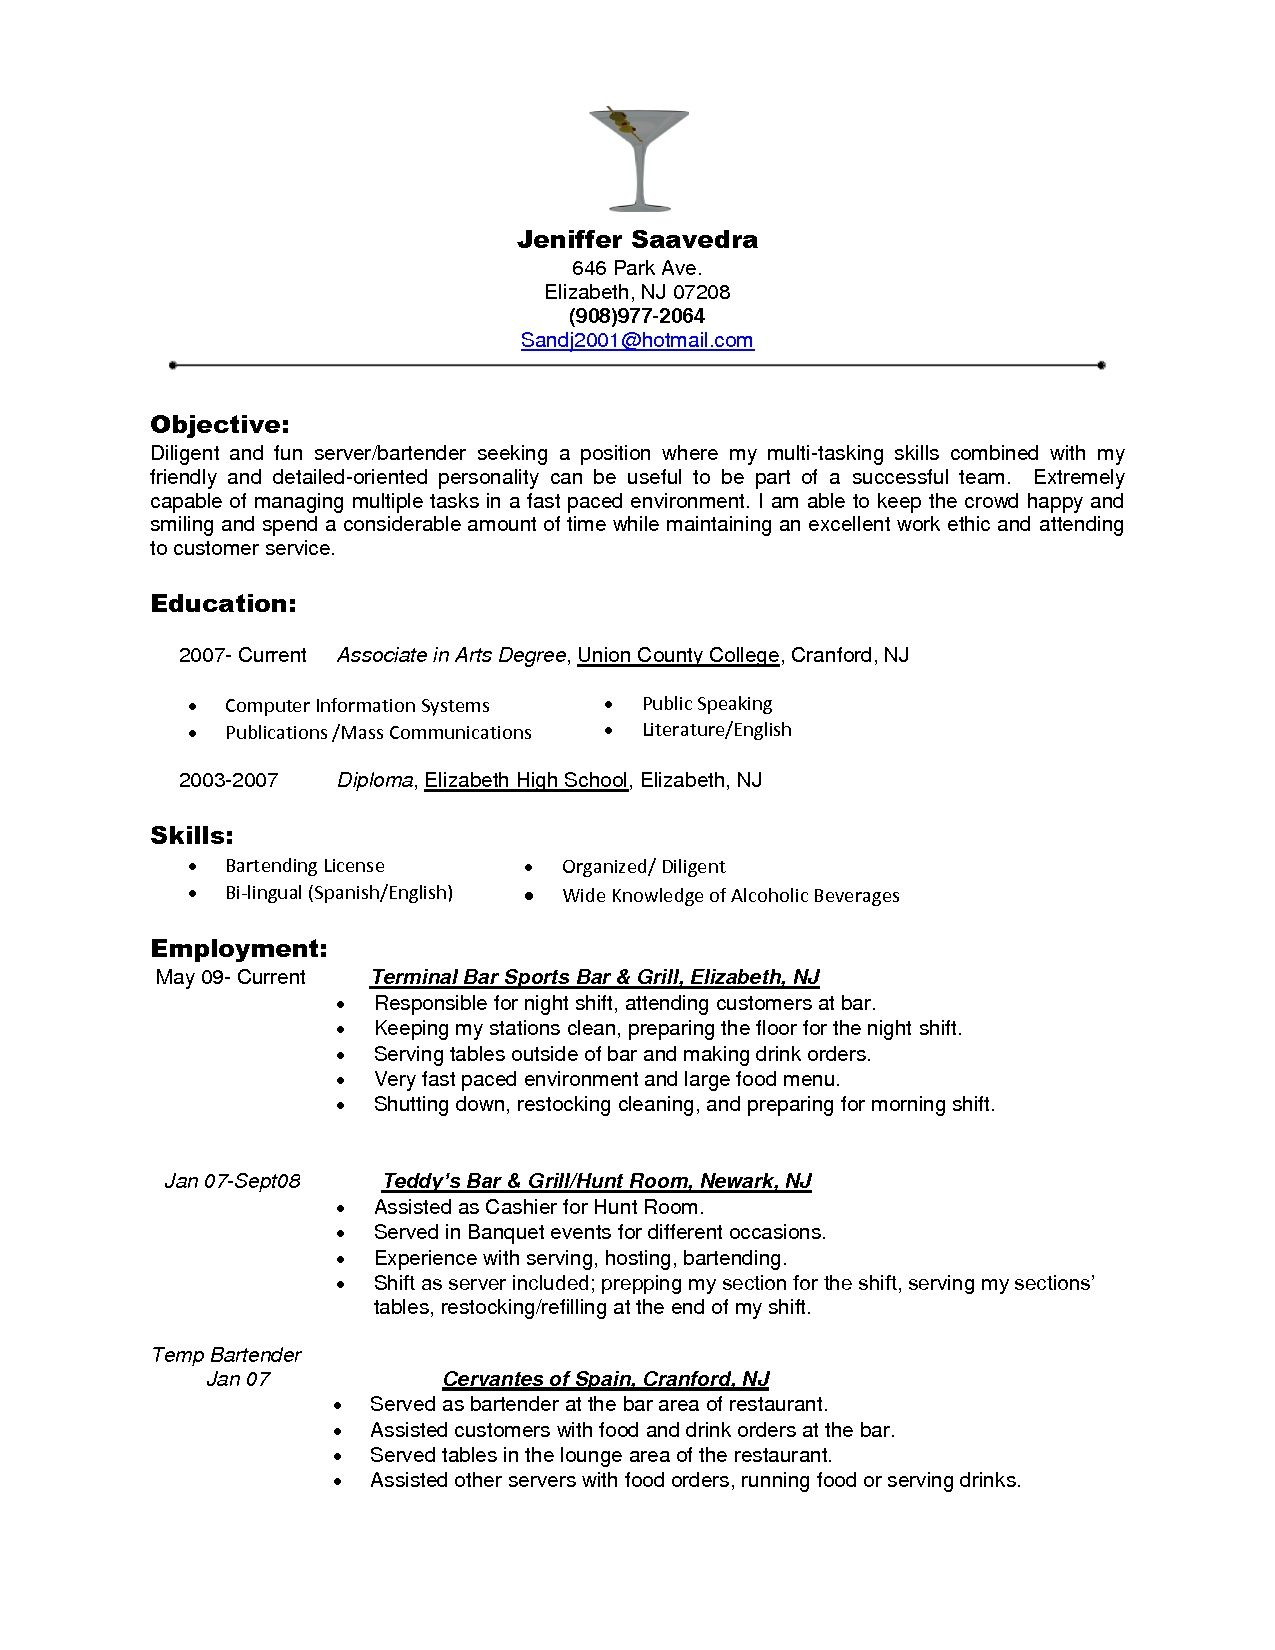 An Objective For A Resume Bartender Objectives Resume  Bartender Objectives Resume Will